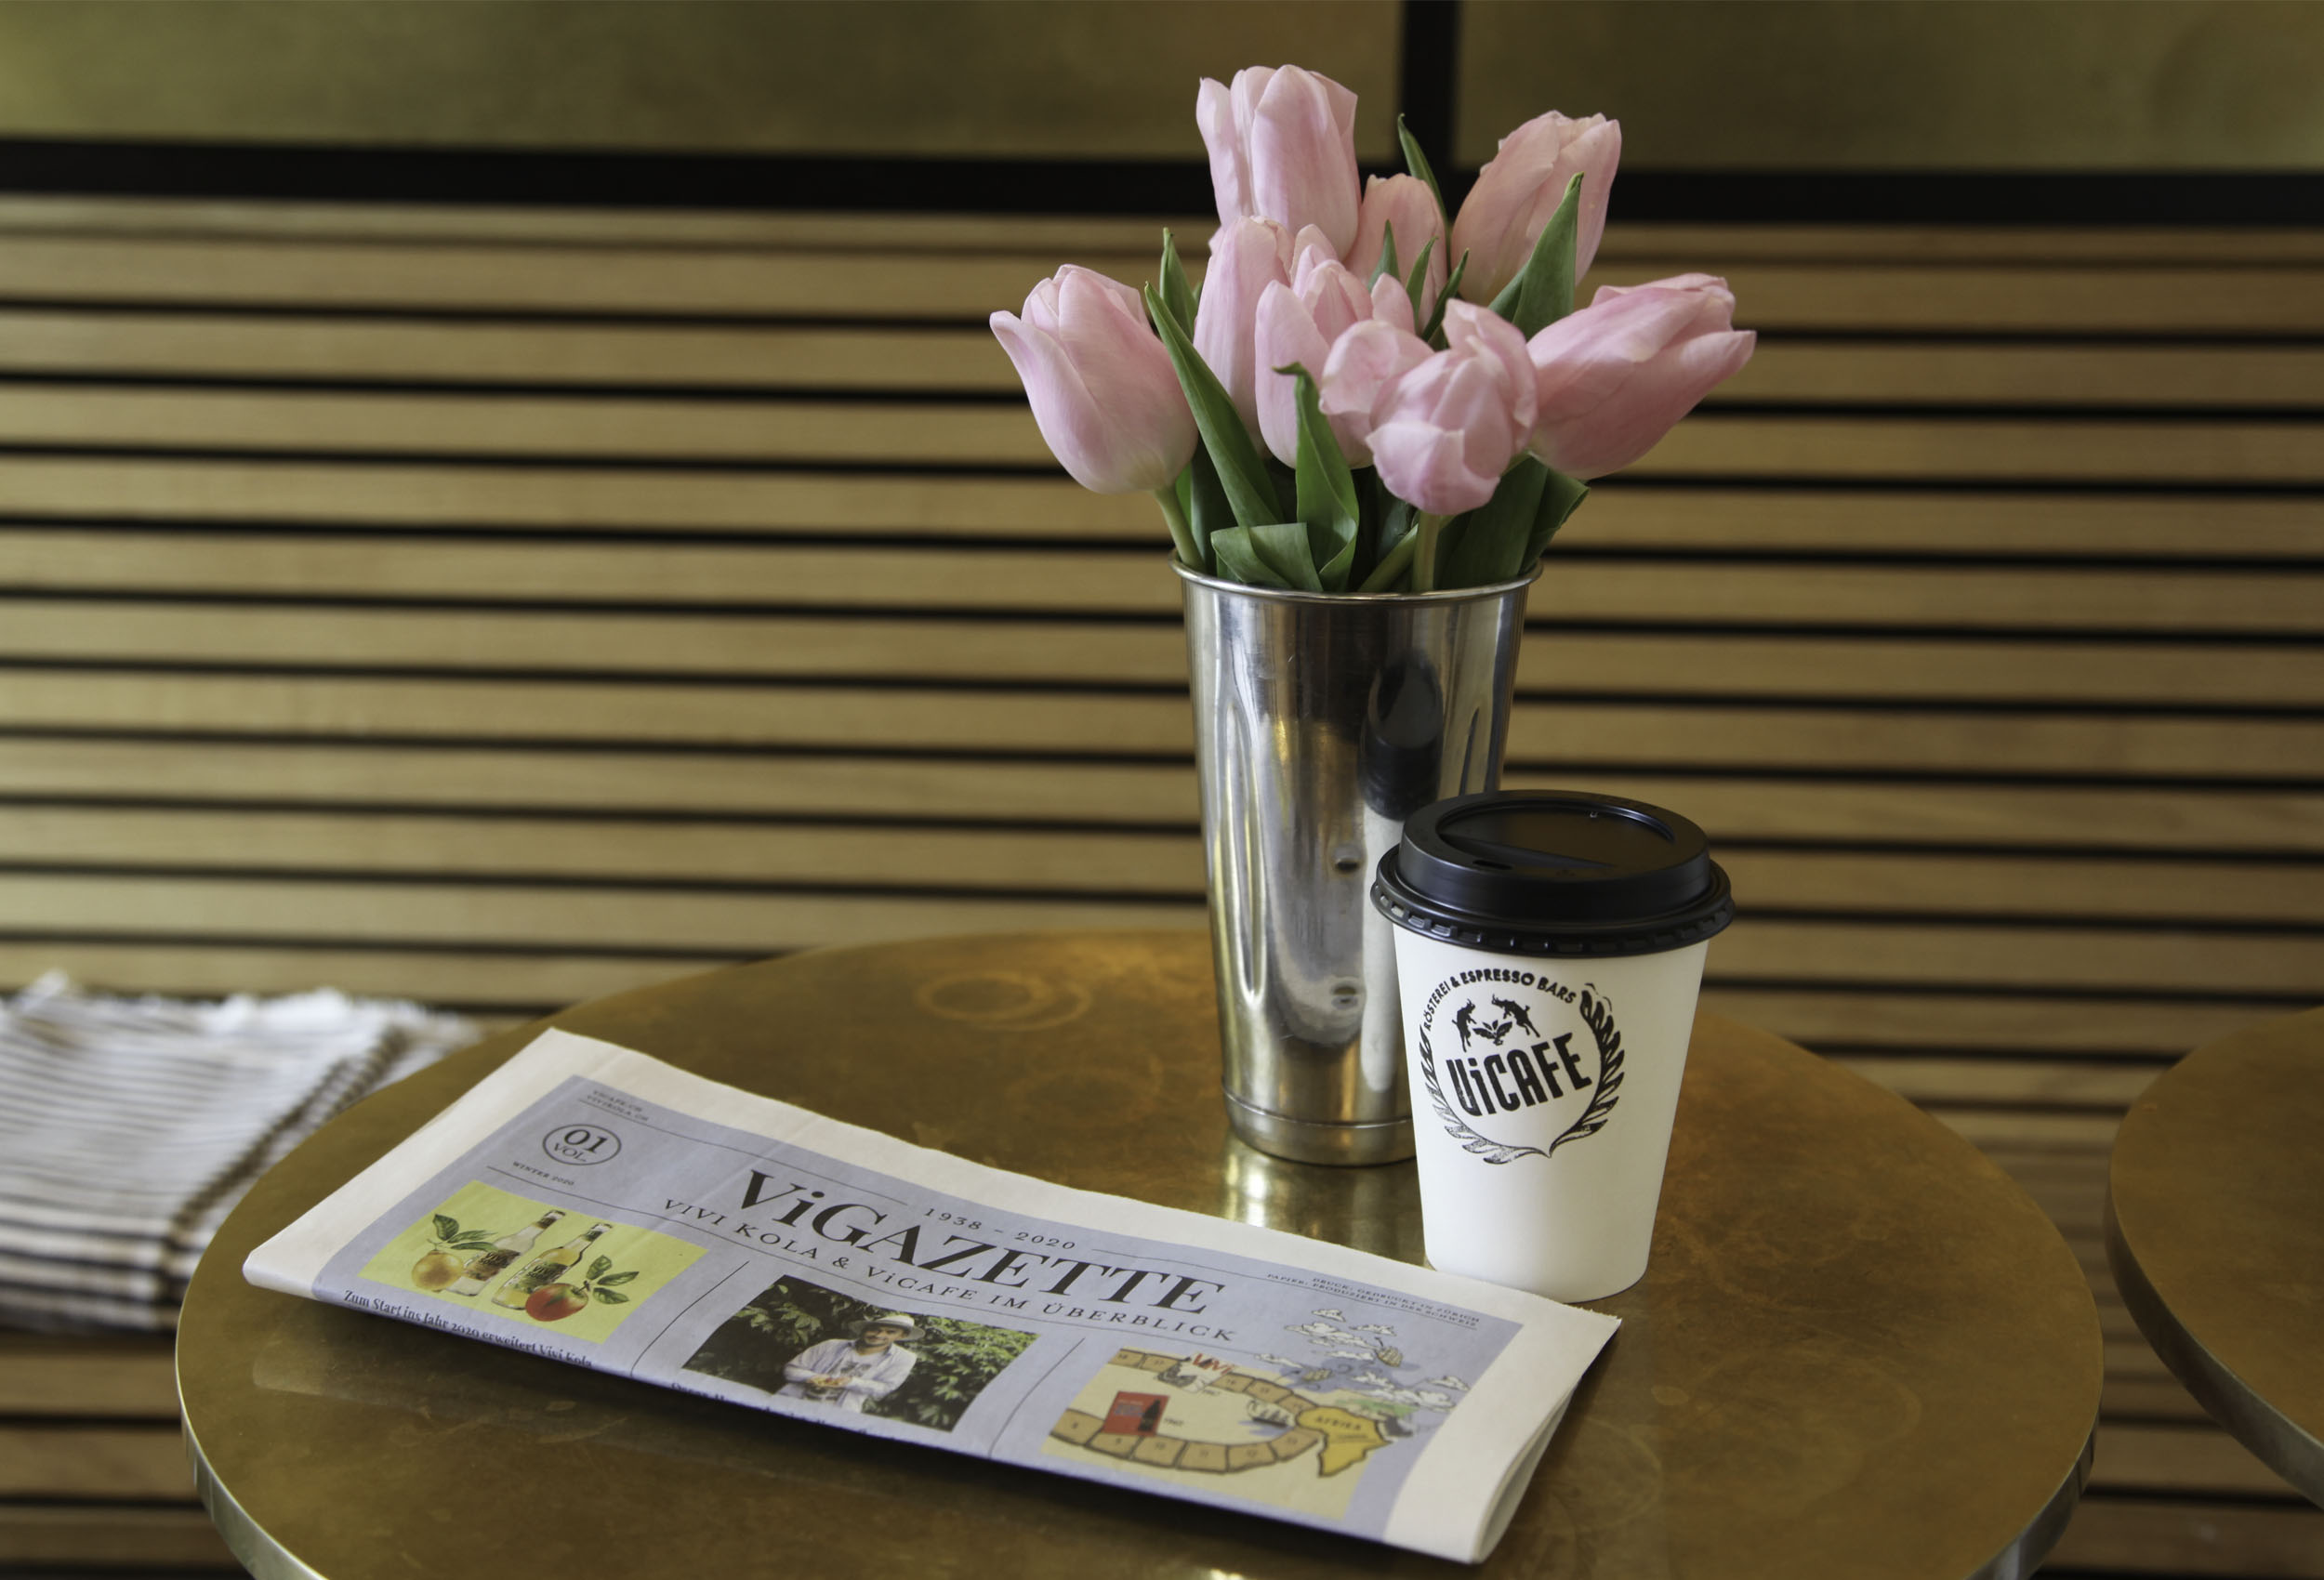 Vigazette newspaper, vicafe coffee and flowers on golden table